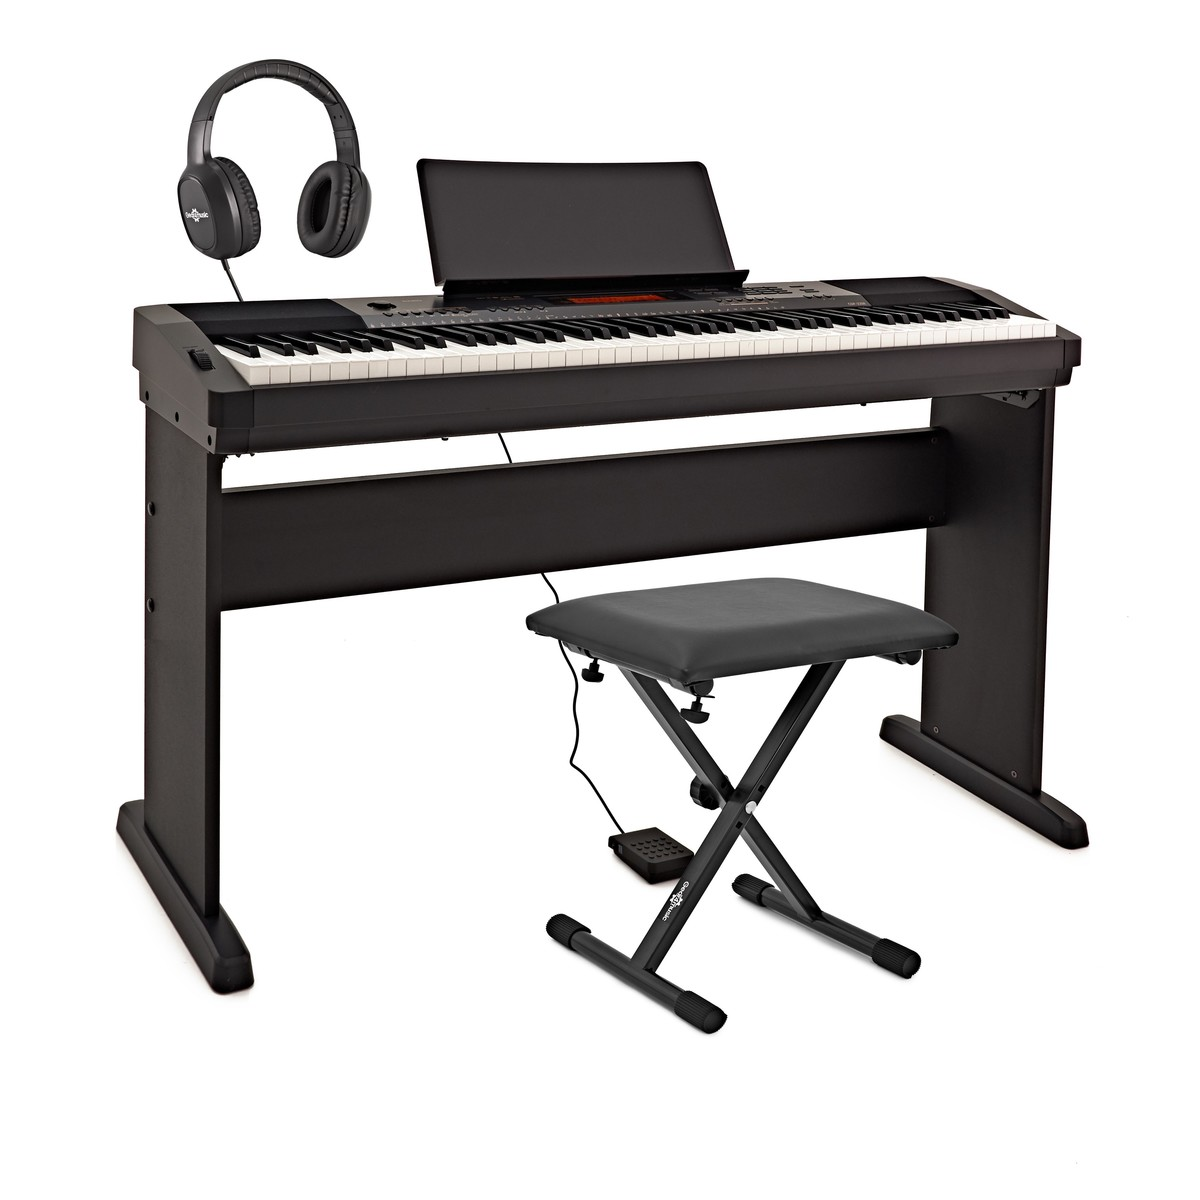 casio cdp 230r digital piano akg headphone pack black at gear4music. Black Bedroom Furniture Sets. Home Design Ideas